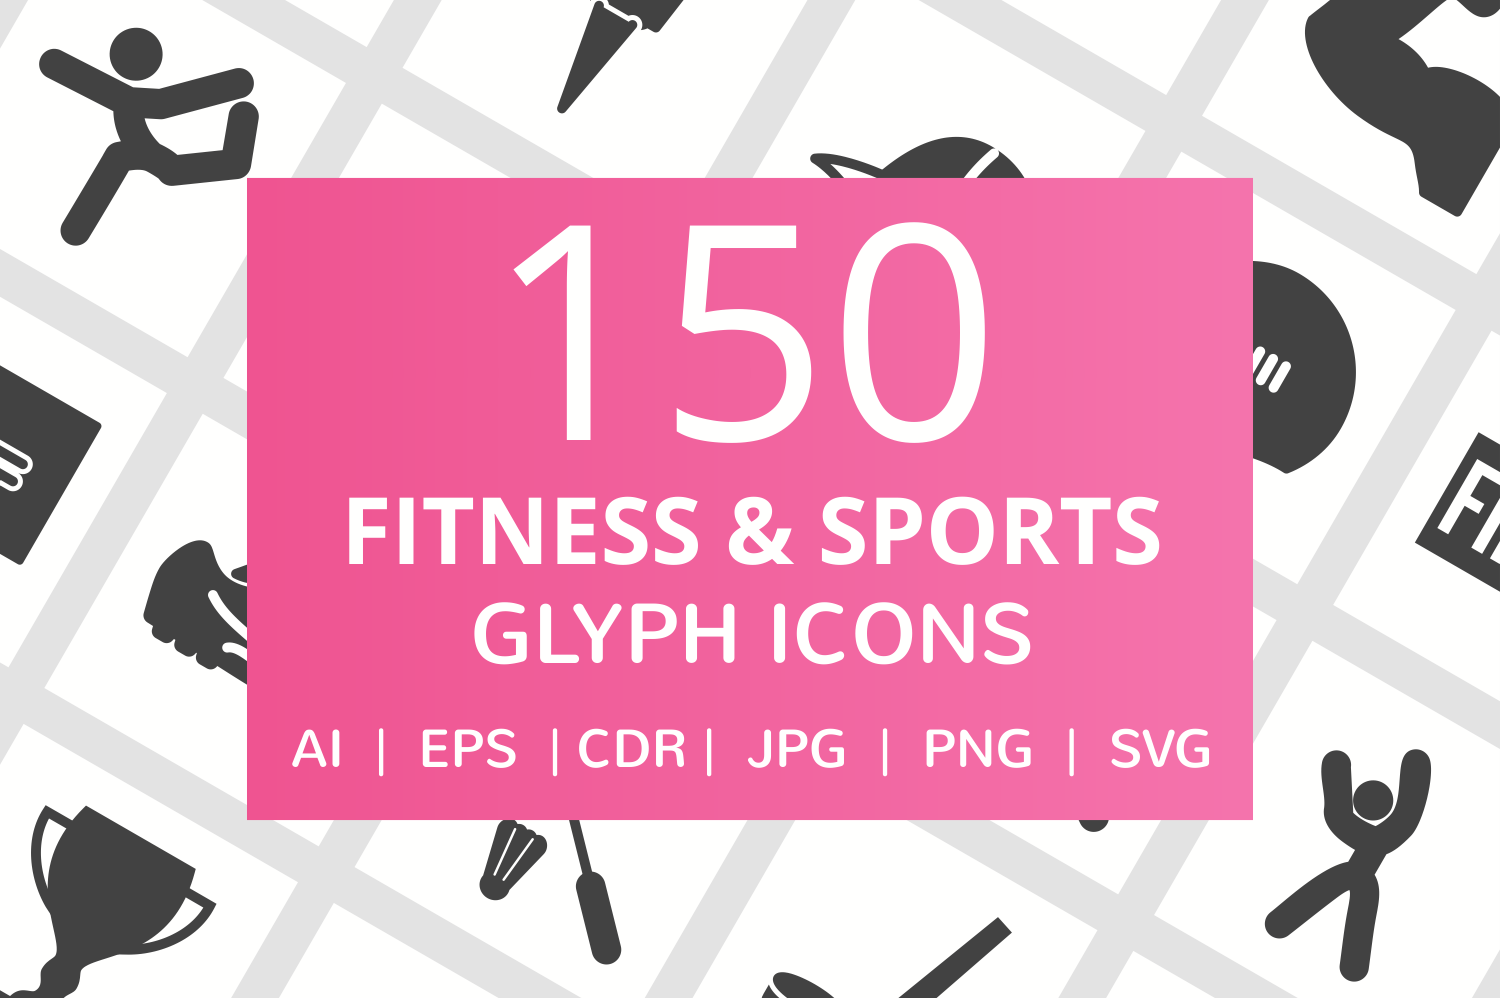 150 Fitness & Sports Glyph Icons example image 1